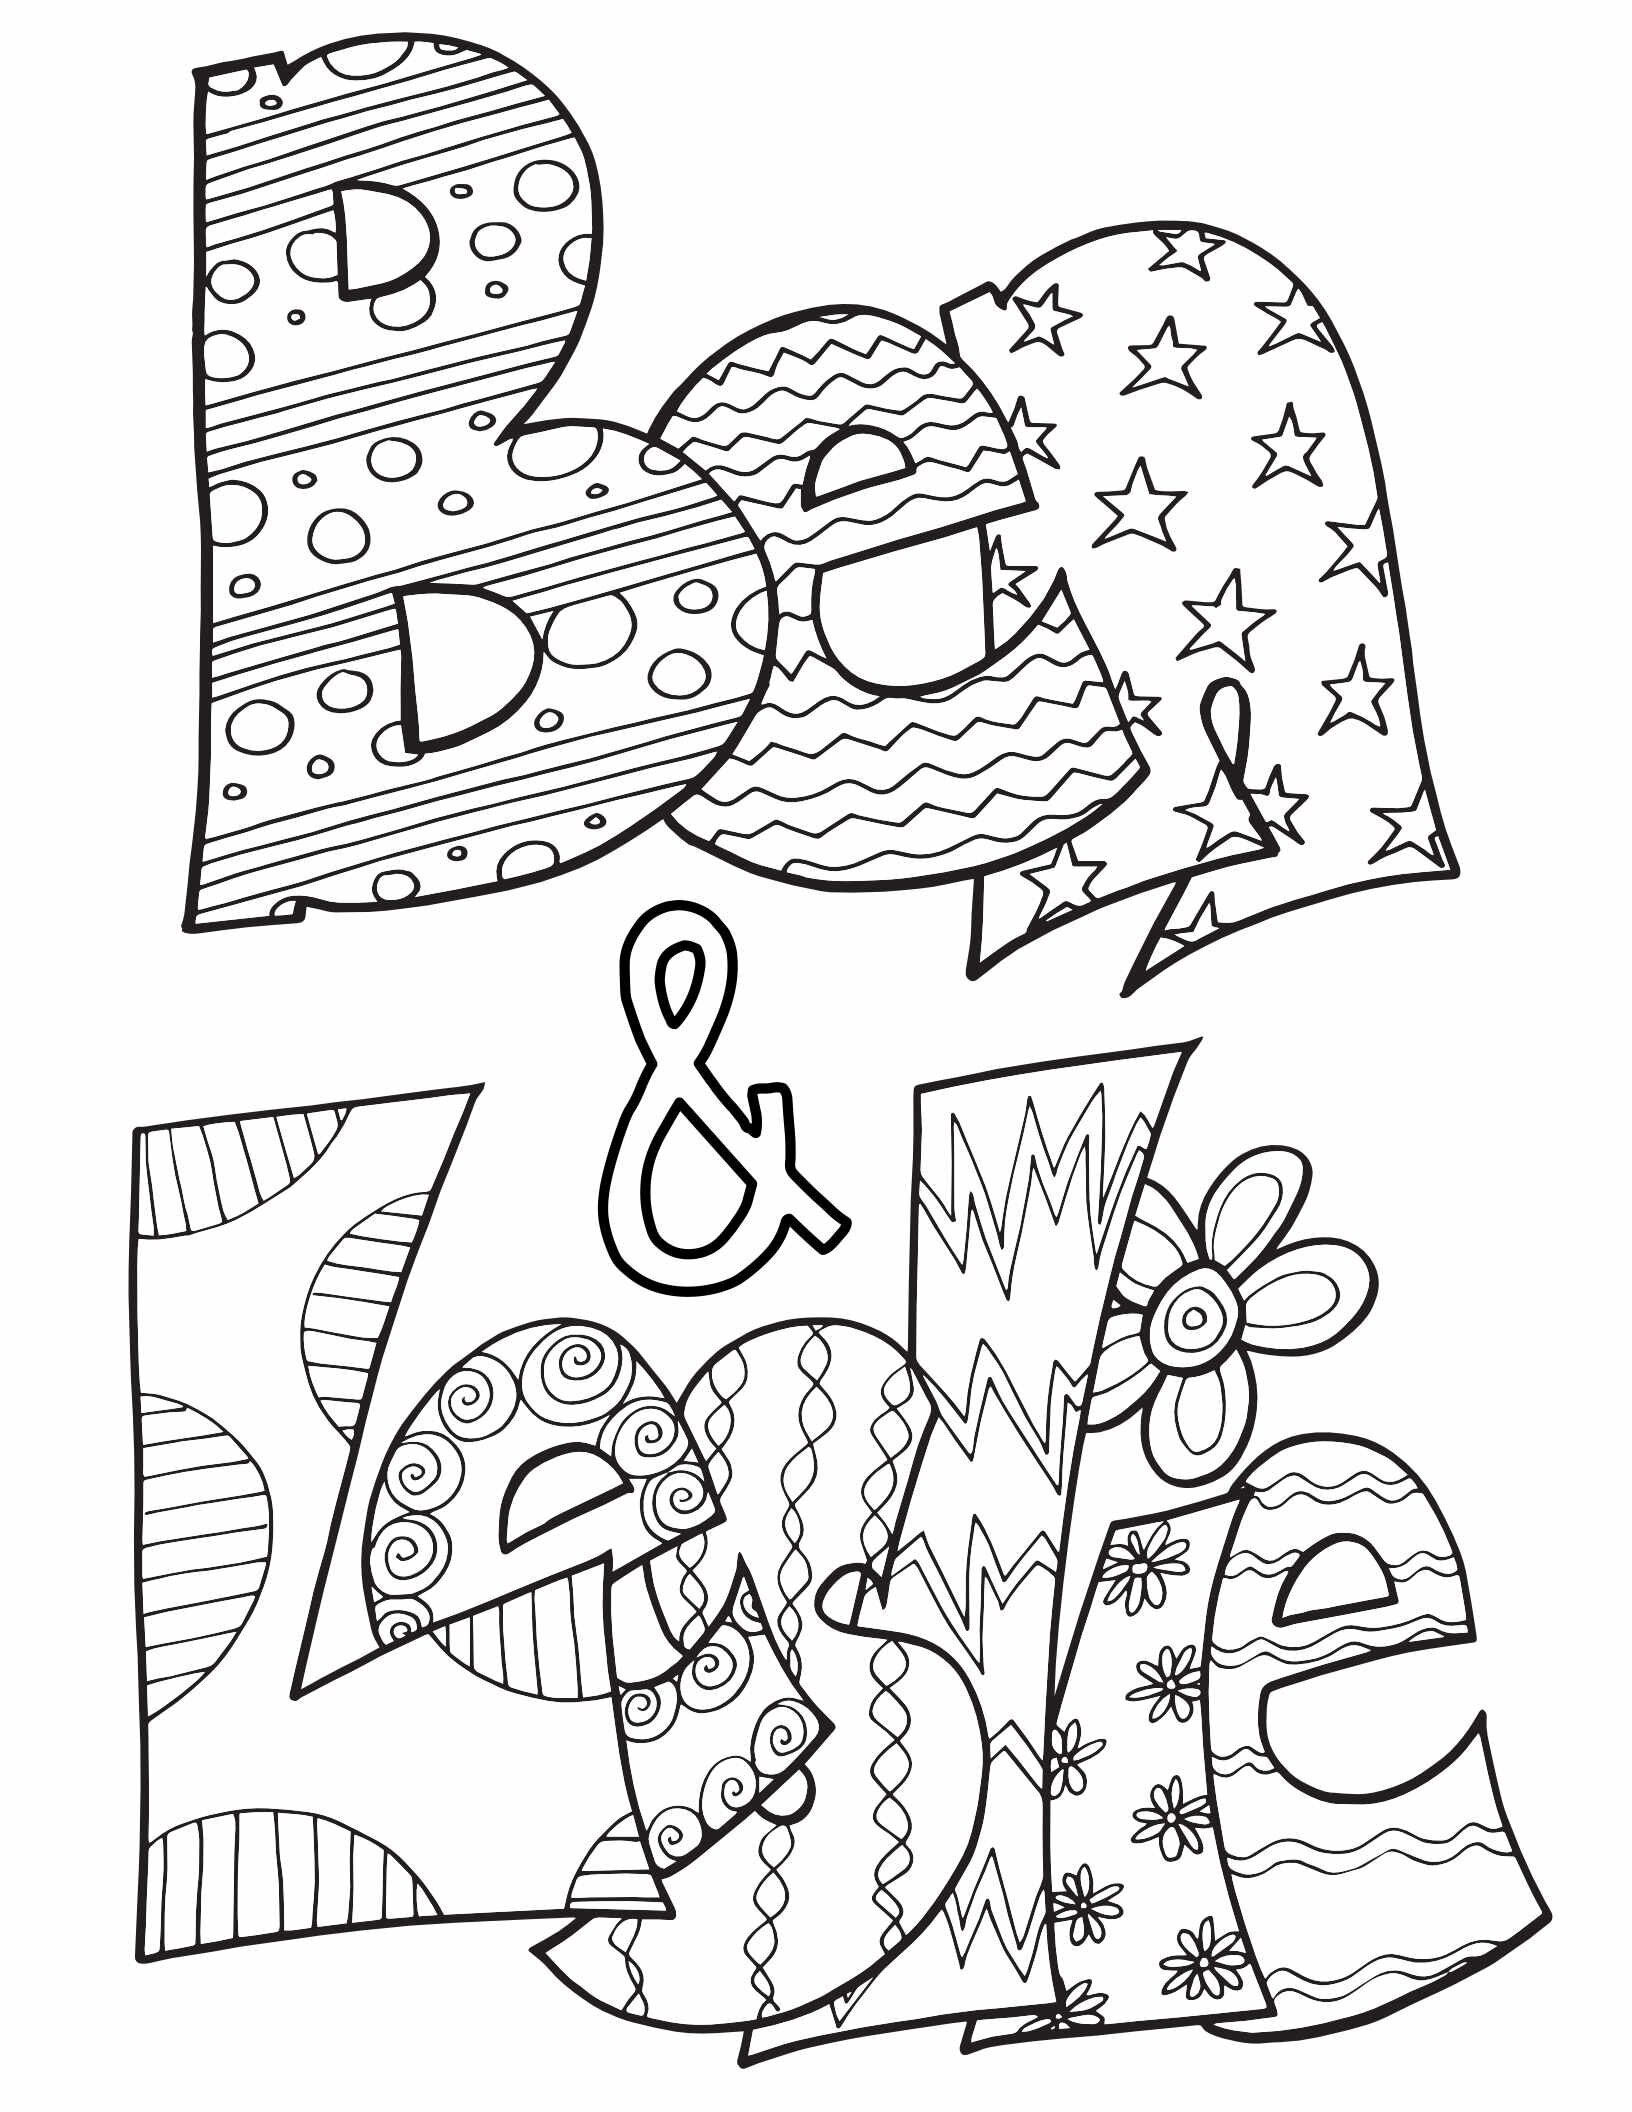 10 Favorite Couples As Coloring Pages - Free Valentine's ...